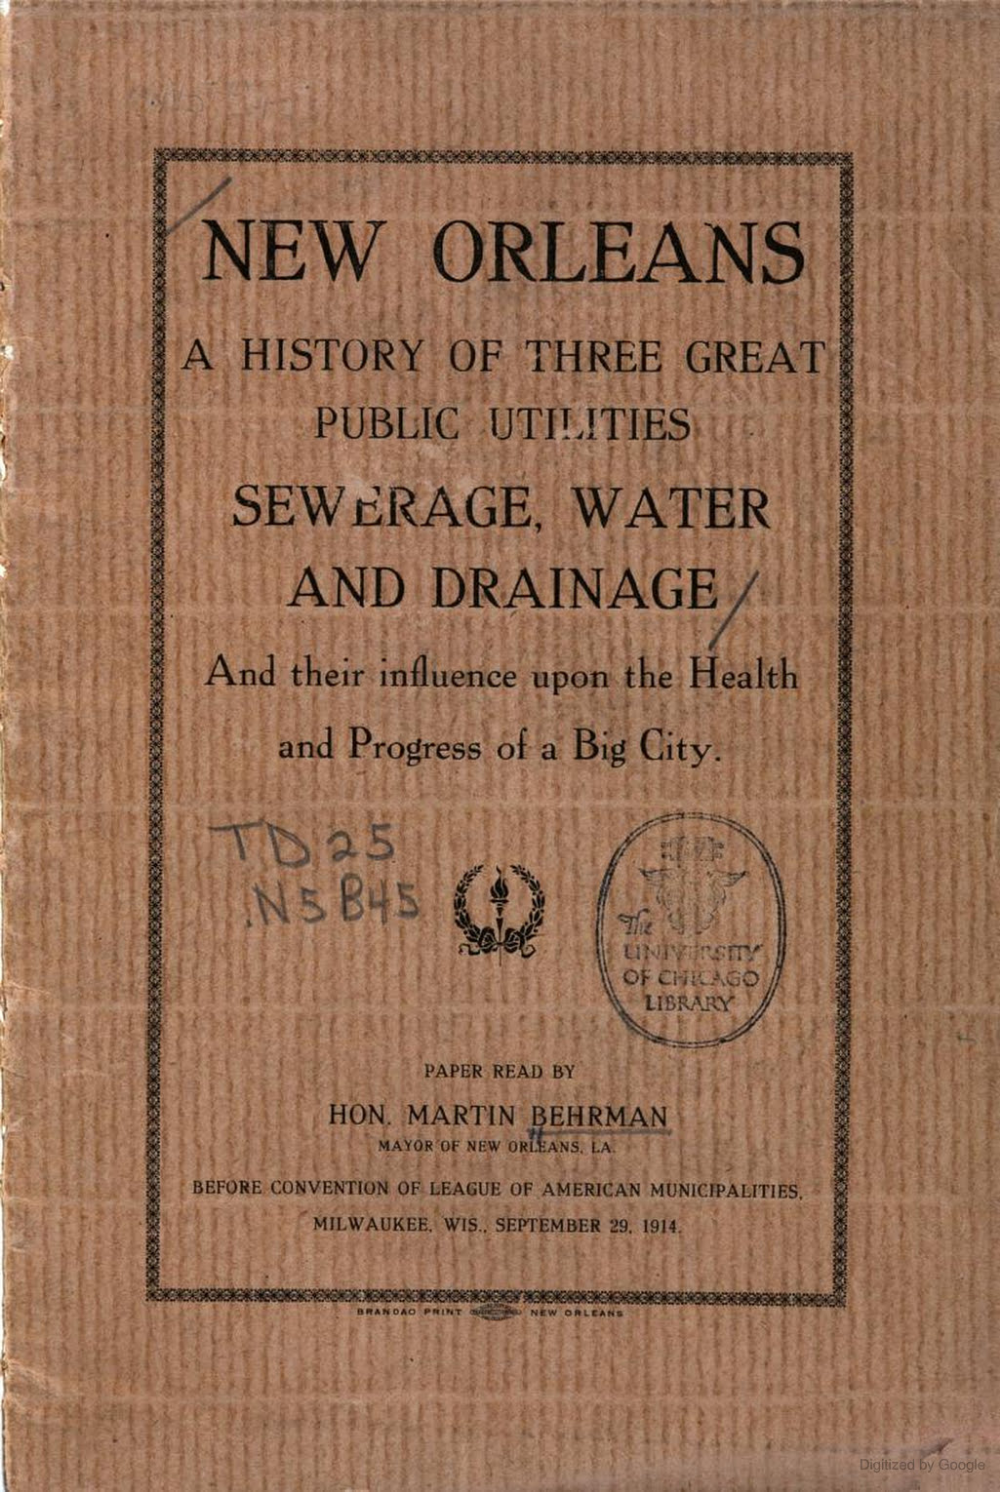 New Orleans A History of Three Great Public Utilities